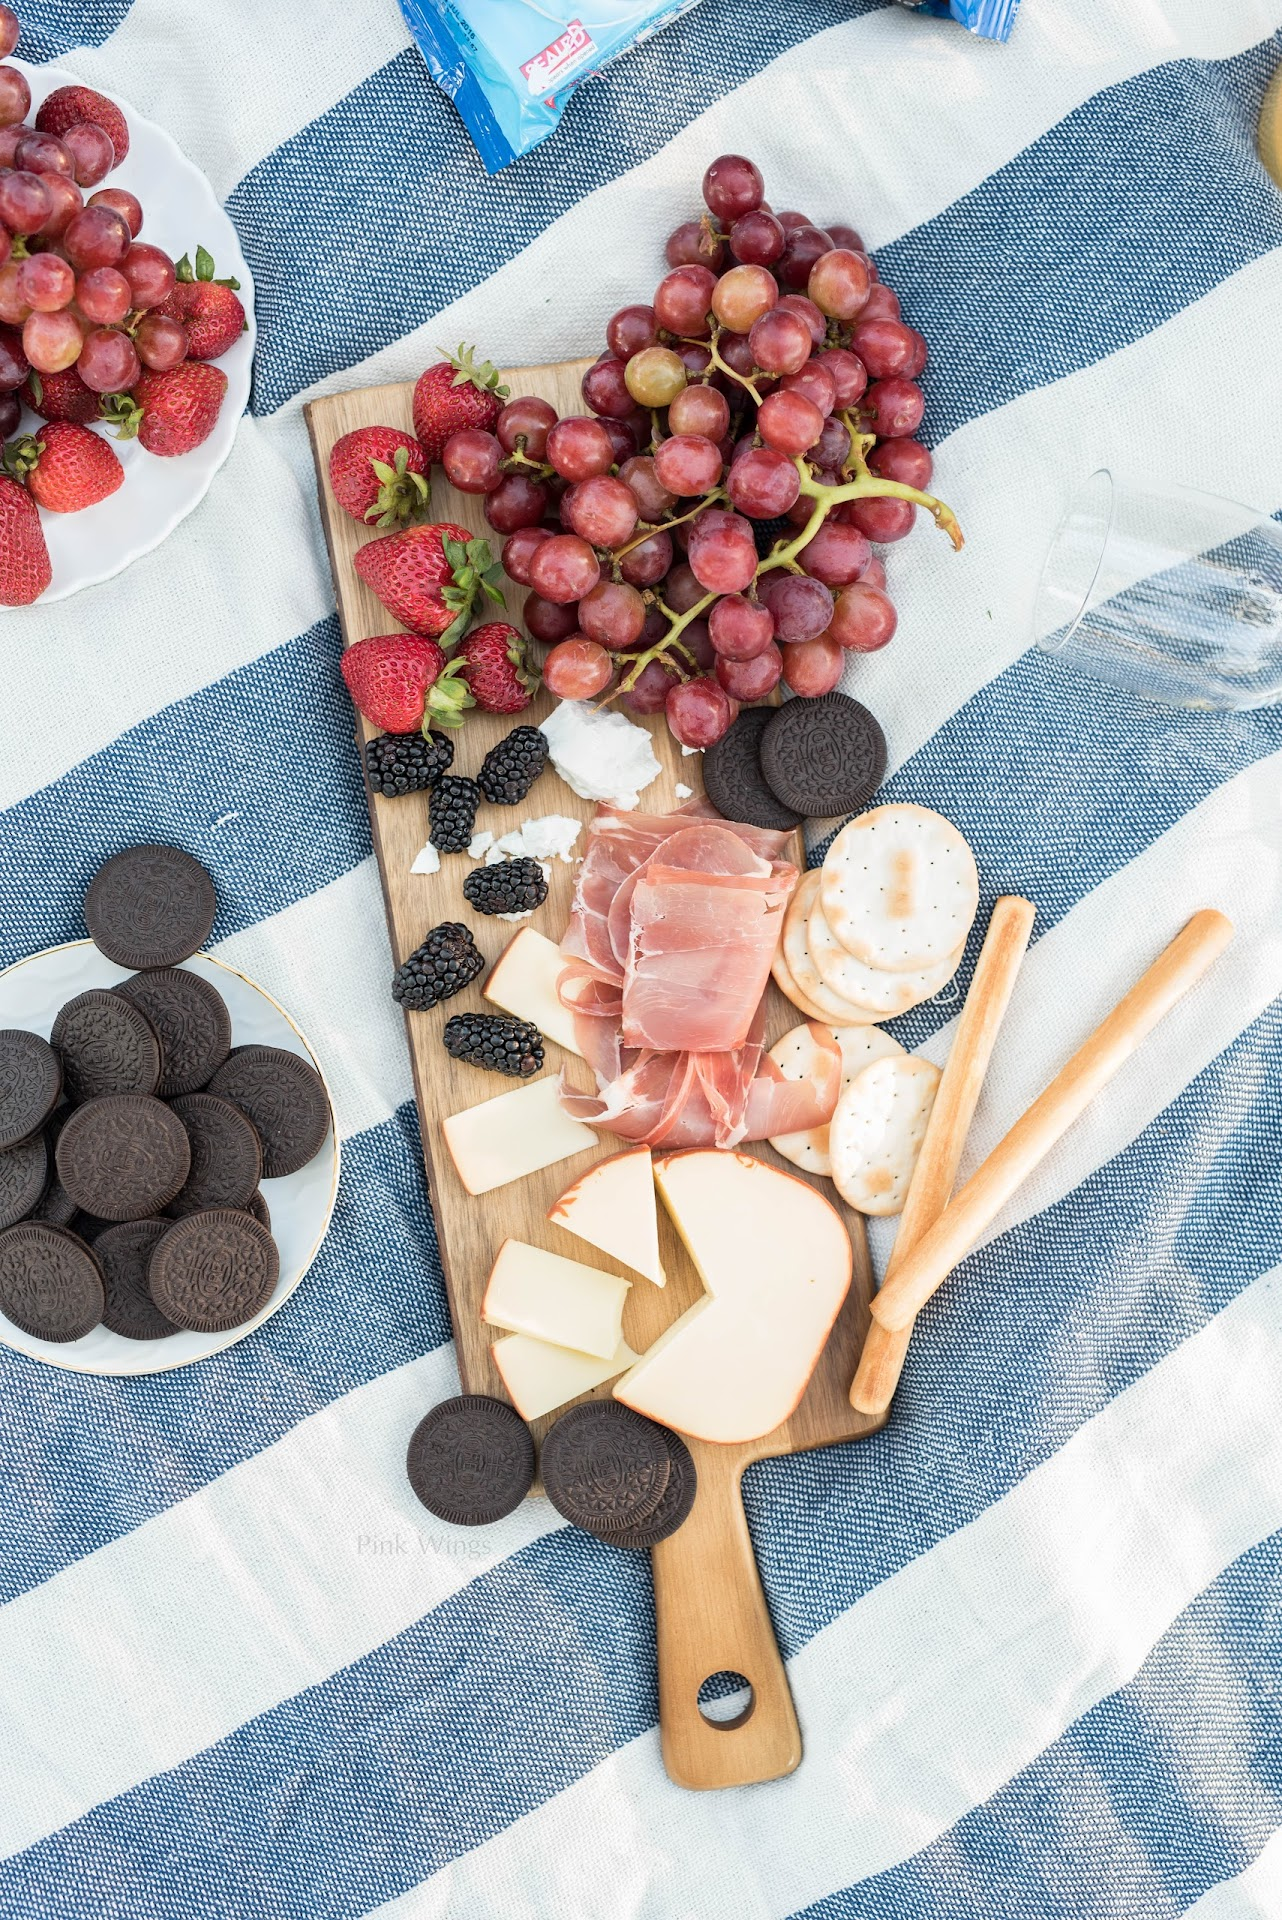 romantic picnic, picnic for two, how to throw the perfect picnic, picnic ideas, where to buy a picnic basket, tips for picnics, picnic blanket, picnic food ideas, picnic dessert, cheese board ideas, picnic food, charcuterie, summer picnic ideas